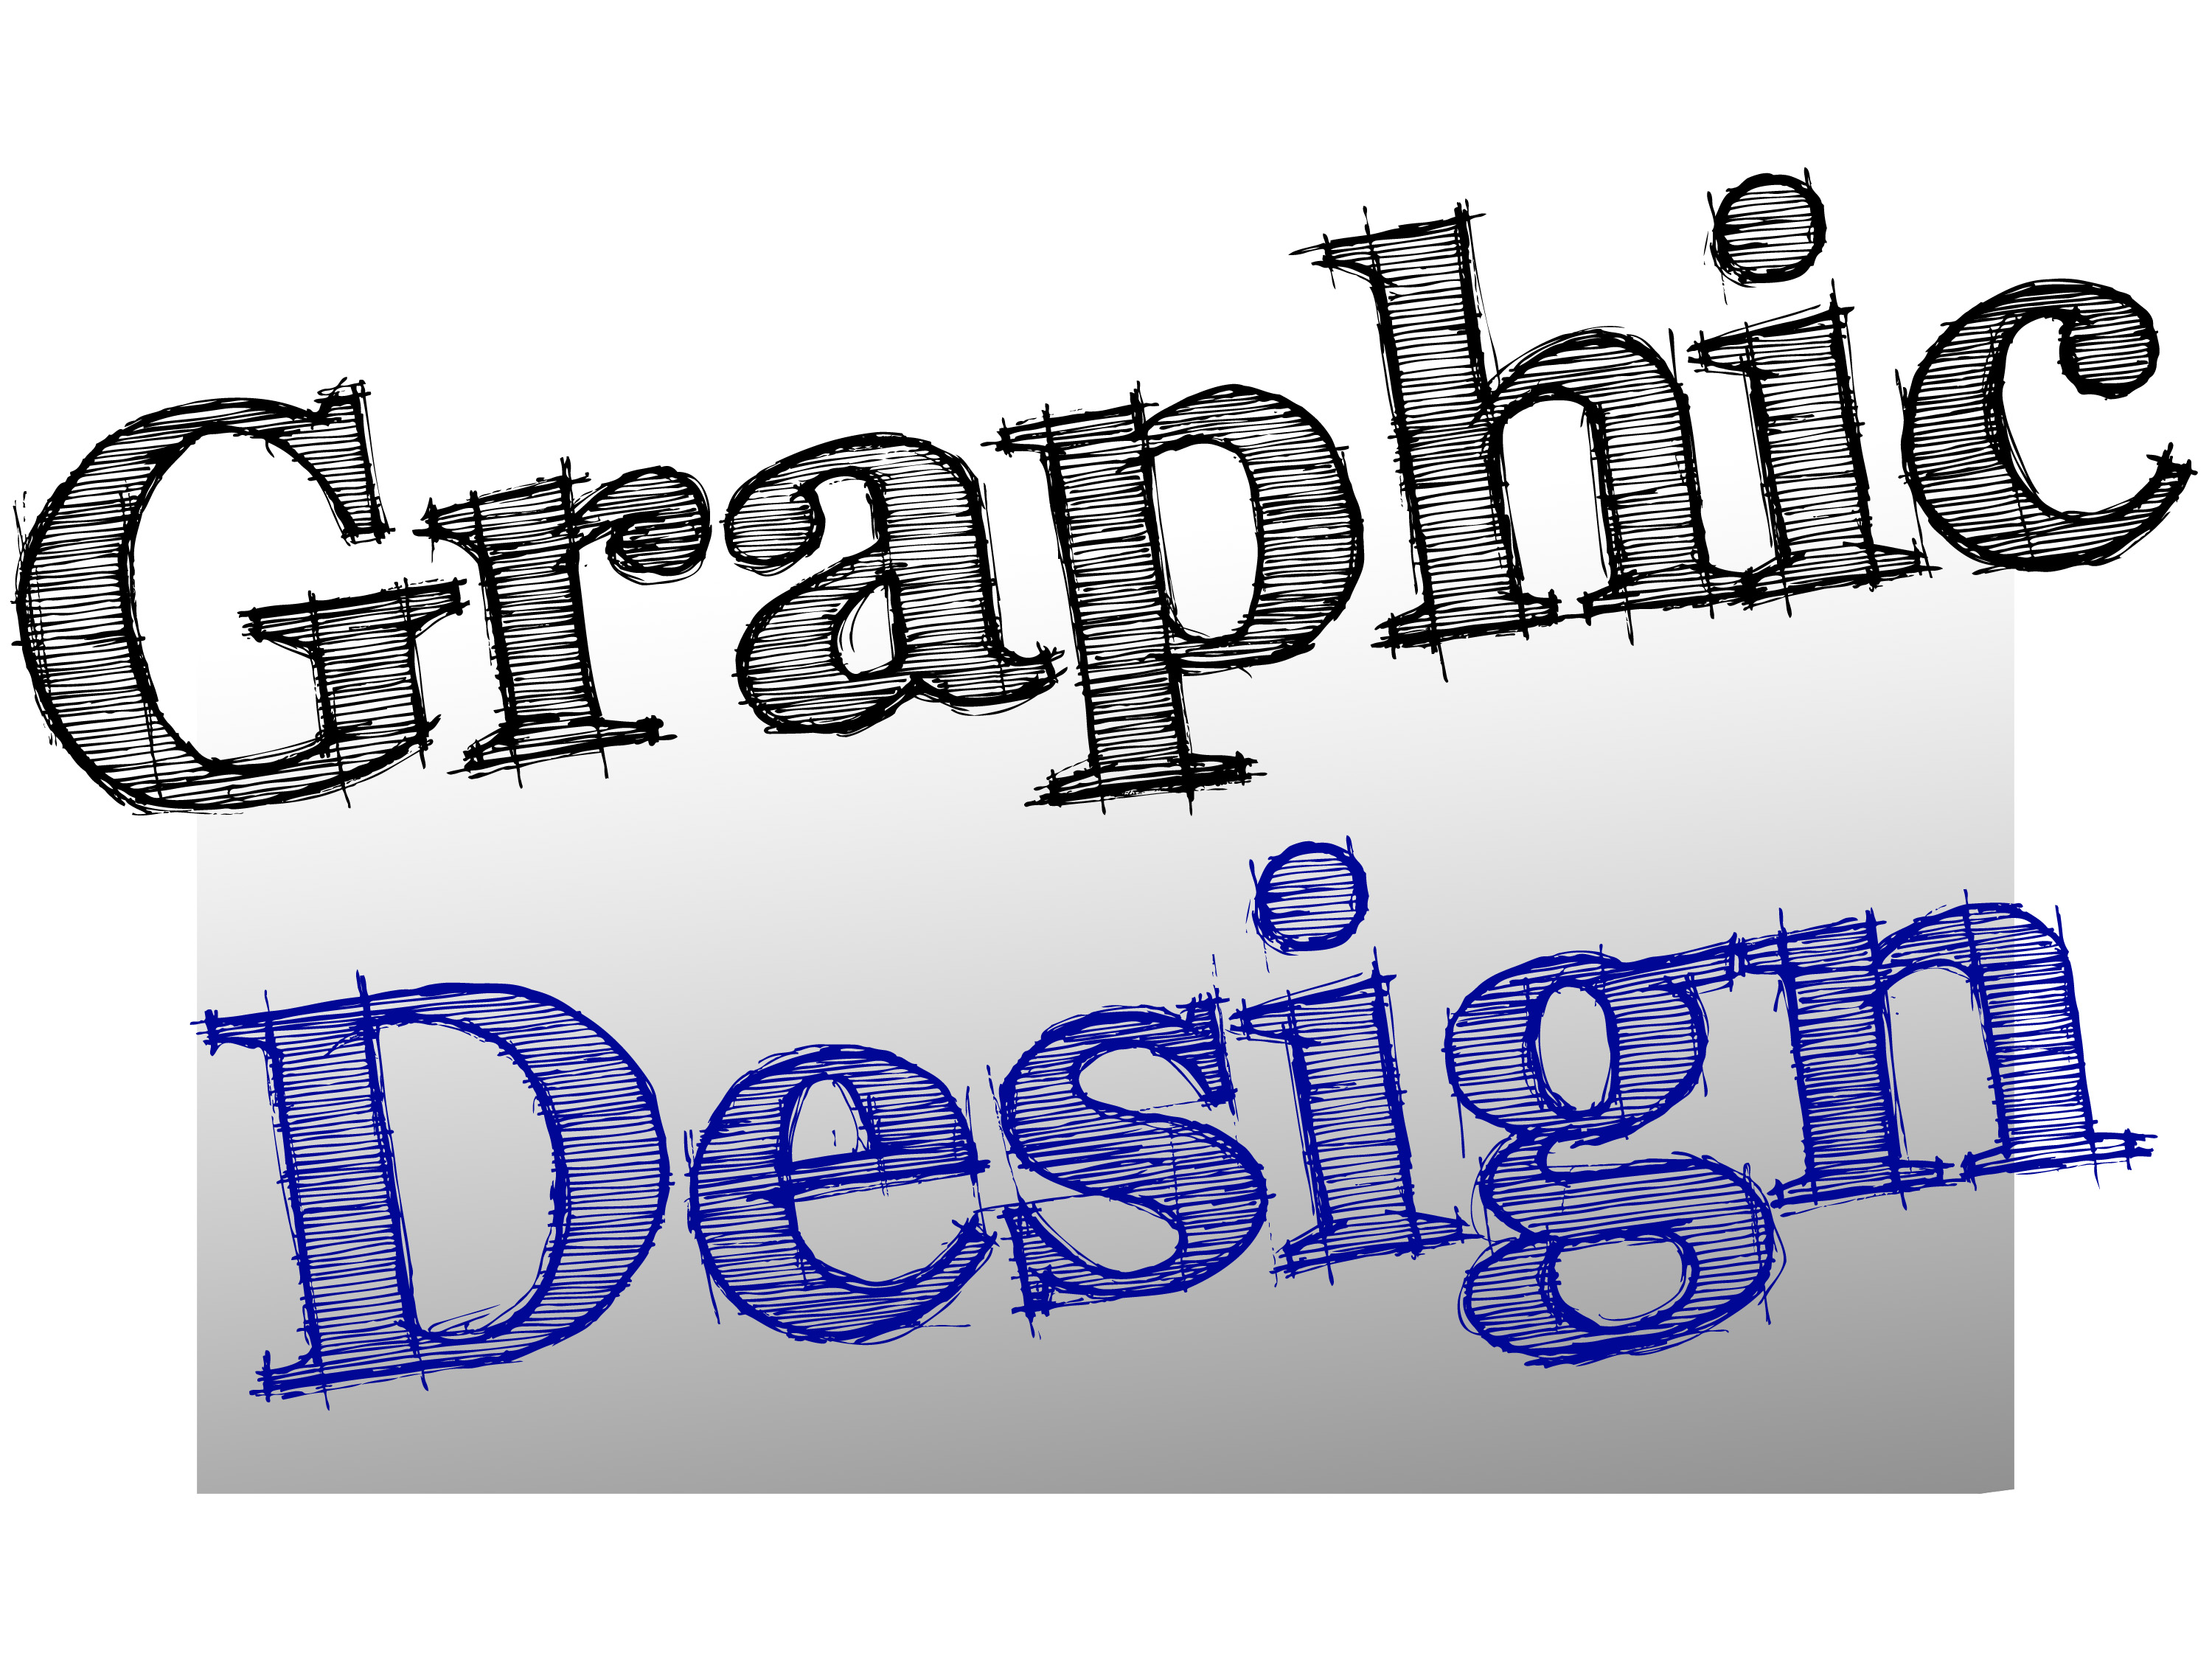 Graphic Lettering Spelling Out Design In A Hand Drawn Style On Grey Graduated Background